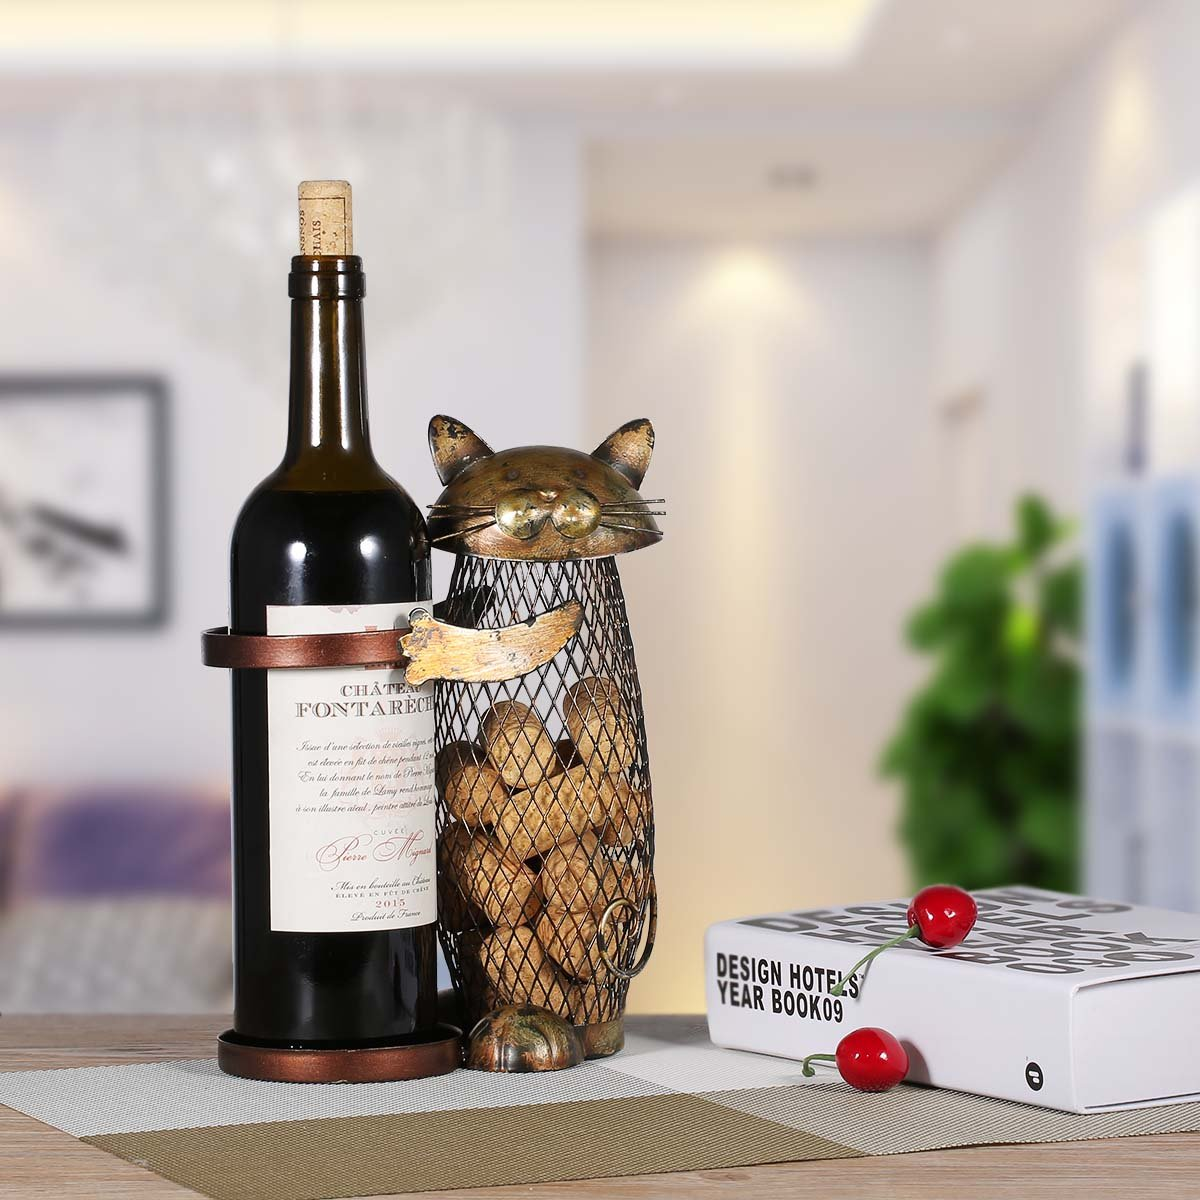 Tooarts Cat Wine Holder Cork Metal Wine Barrel Cork Storage Cage Table Cork Container Ornament by Tooarts (Image #7)